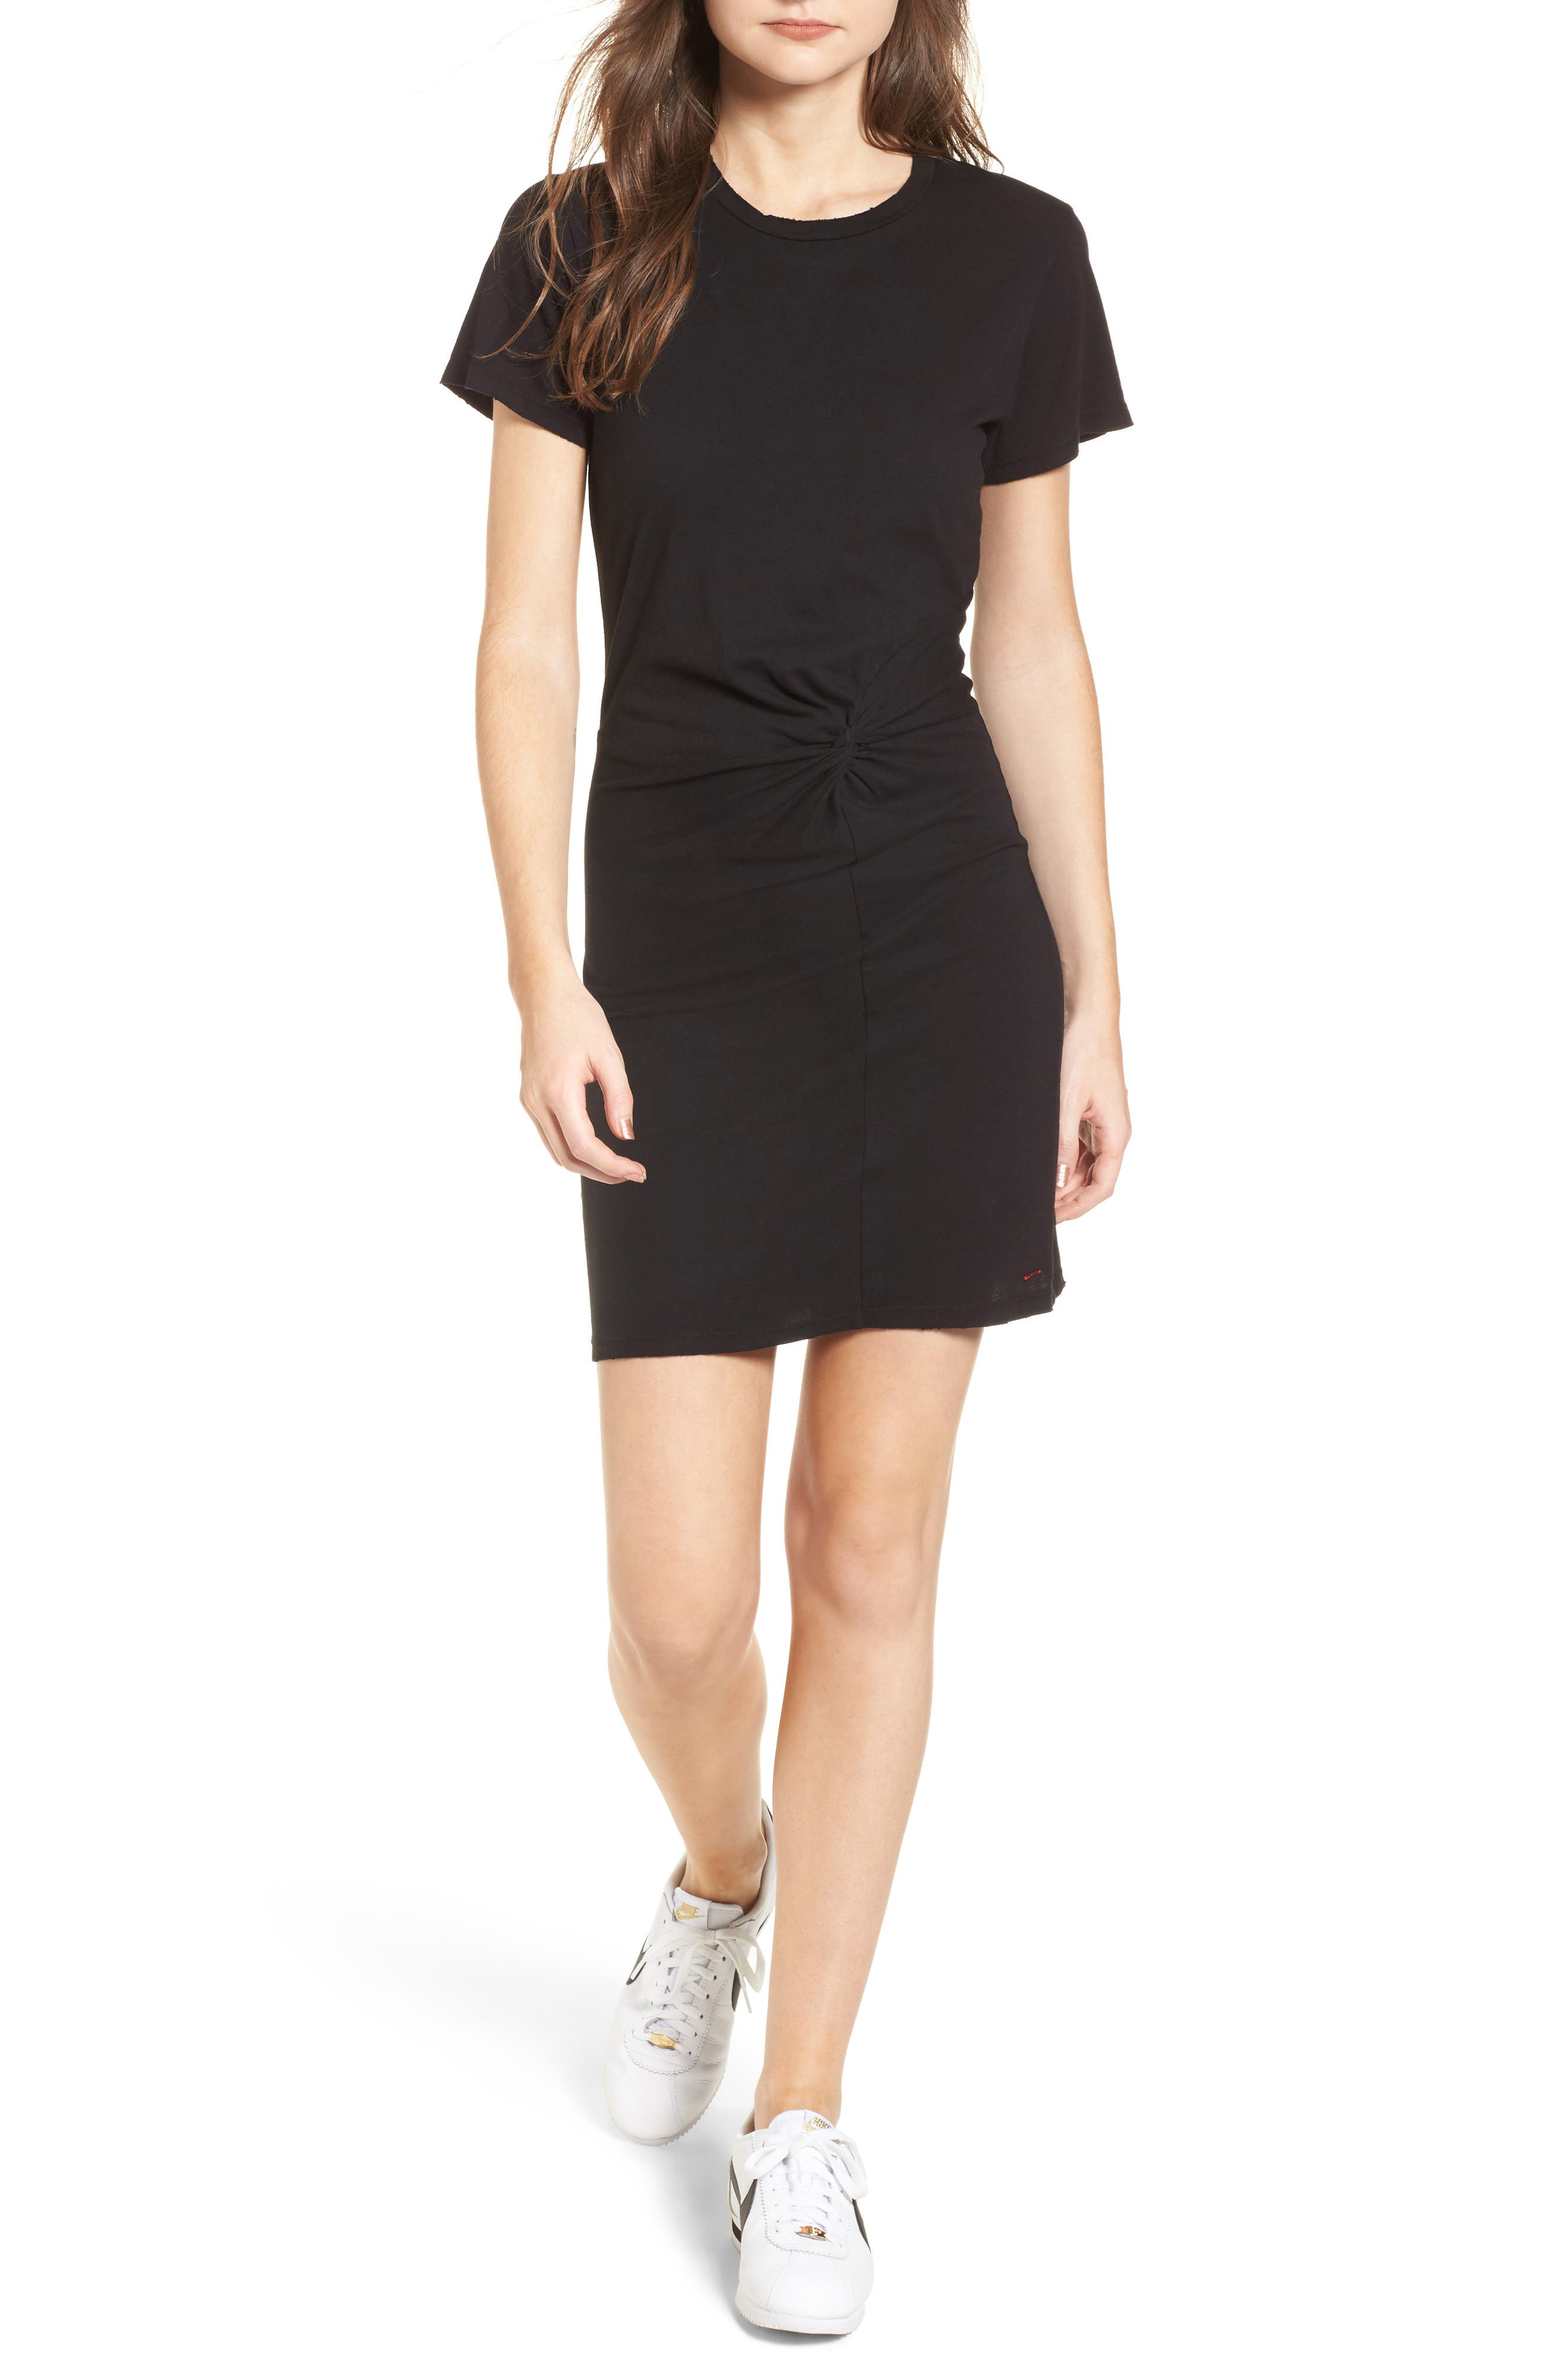 Jazz Knotted T-Shirt Dress,                         Main,                         color, BLACK CAT